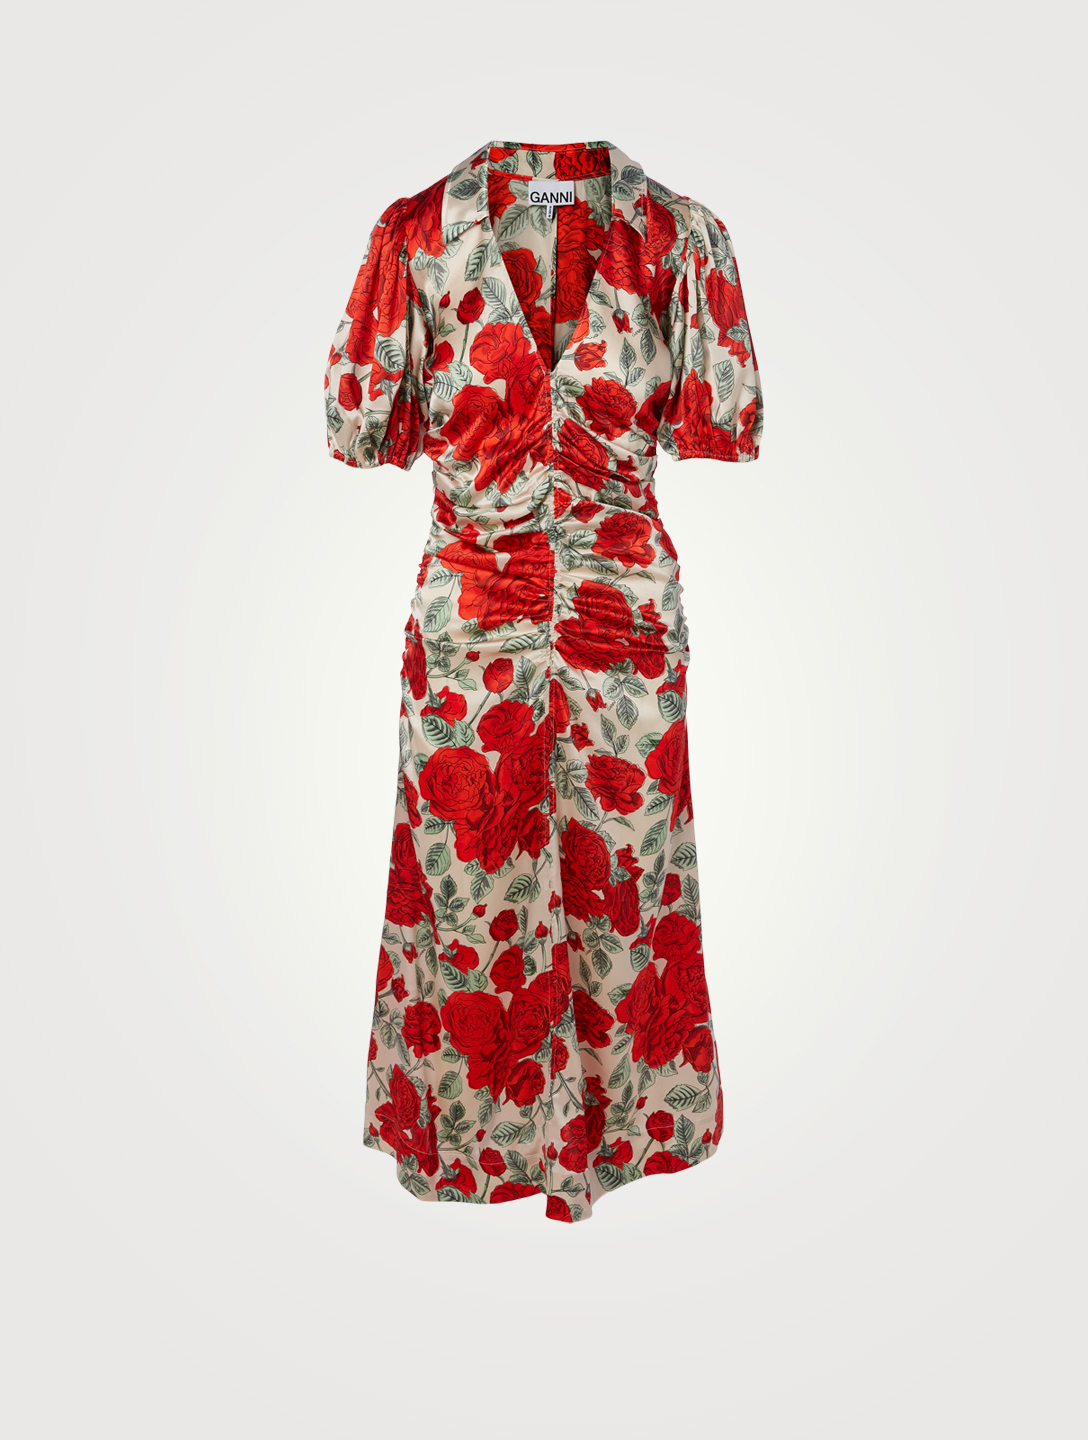 GANNI Silk Stretch Satin Ruched Midi Dress In Floral Print Women's Red